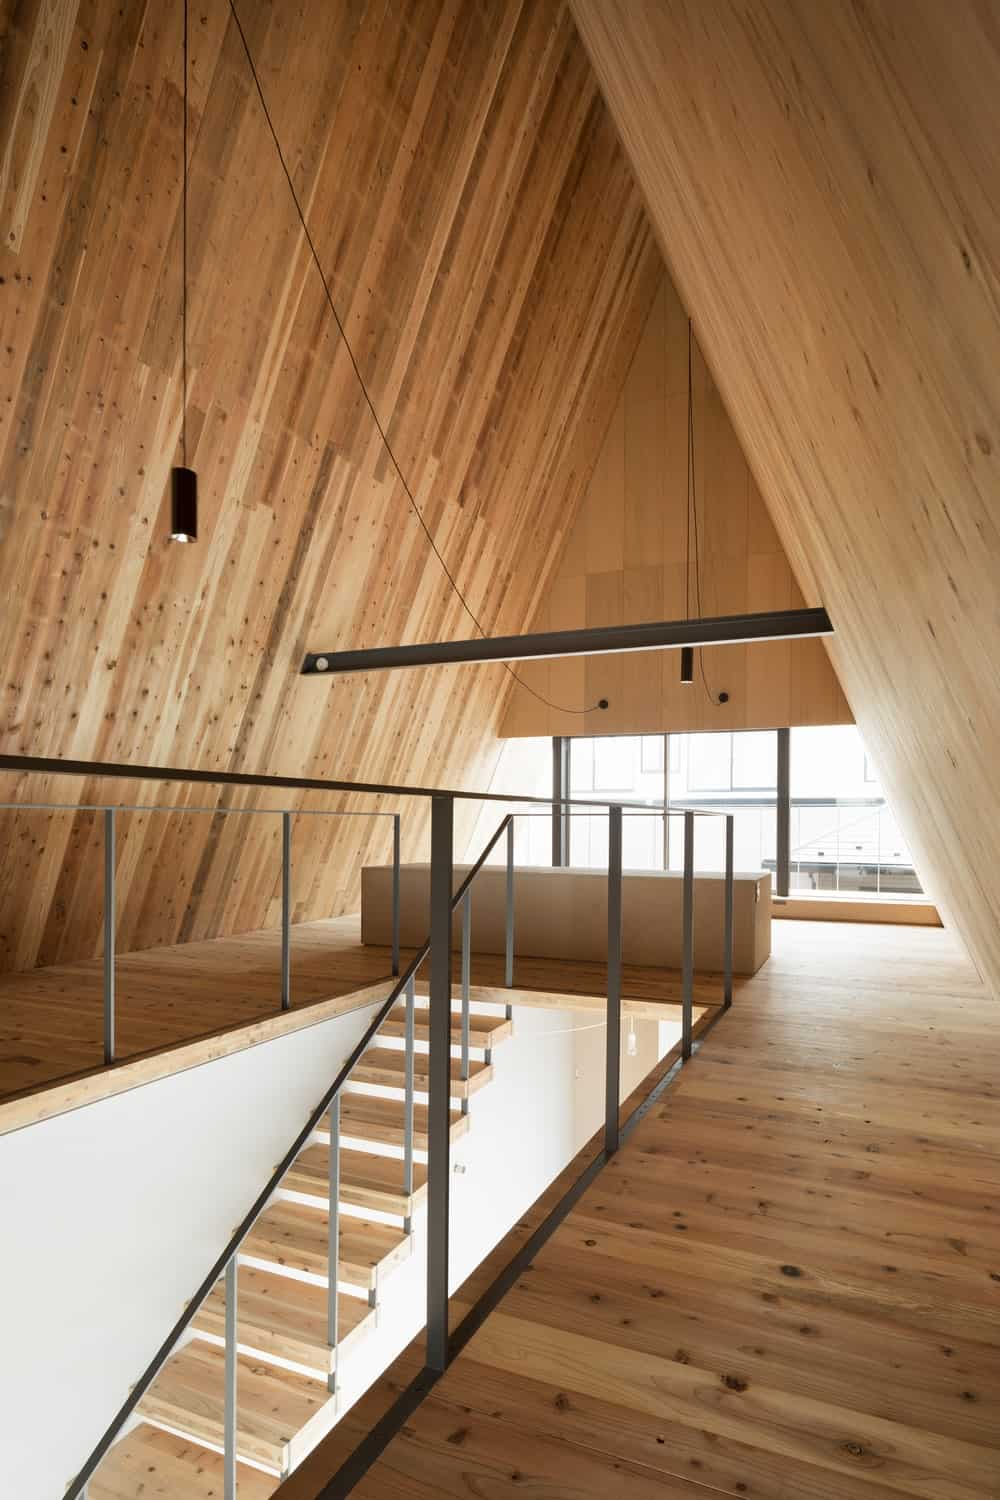 This is a close look at the second level of the house with a tall wooden shiplap cathedral ceiling that matches the flooring.